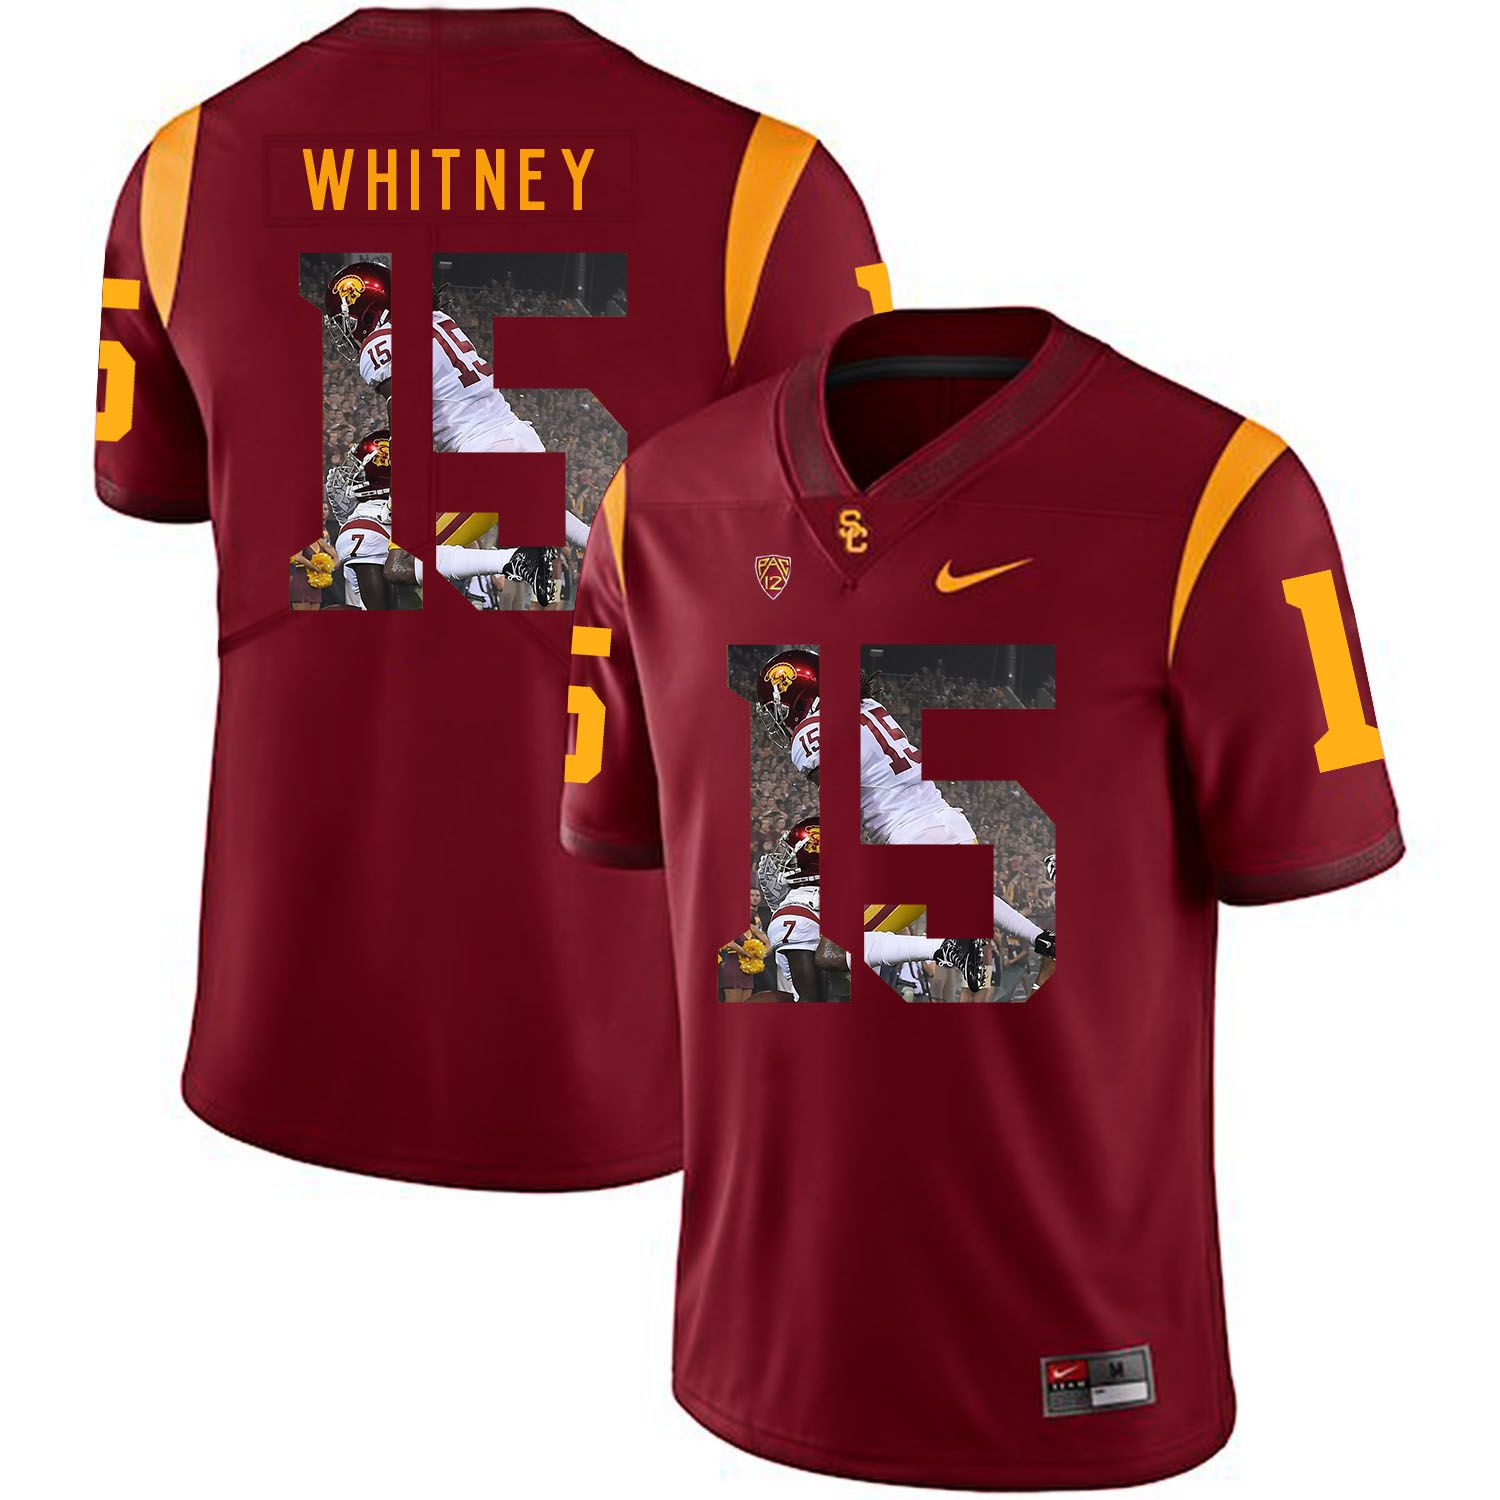 Men USC Trojans 15 Whitney Red Fashion Edition Customized NCAA Jerseys